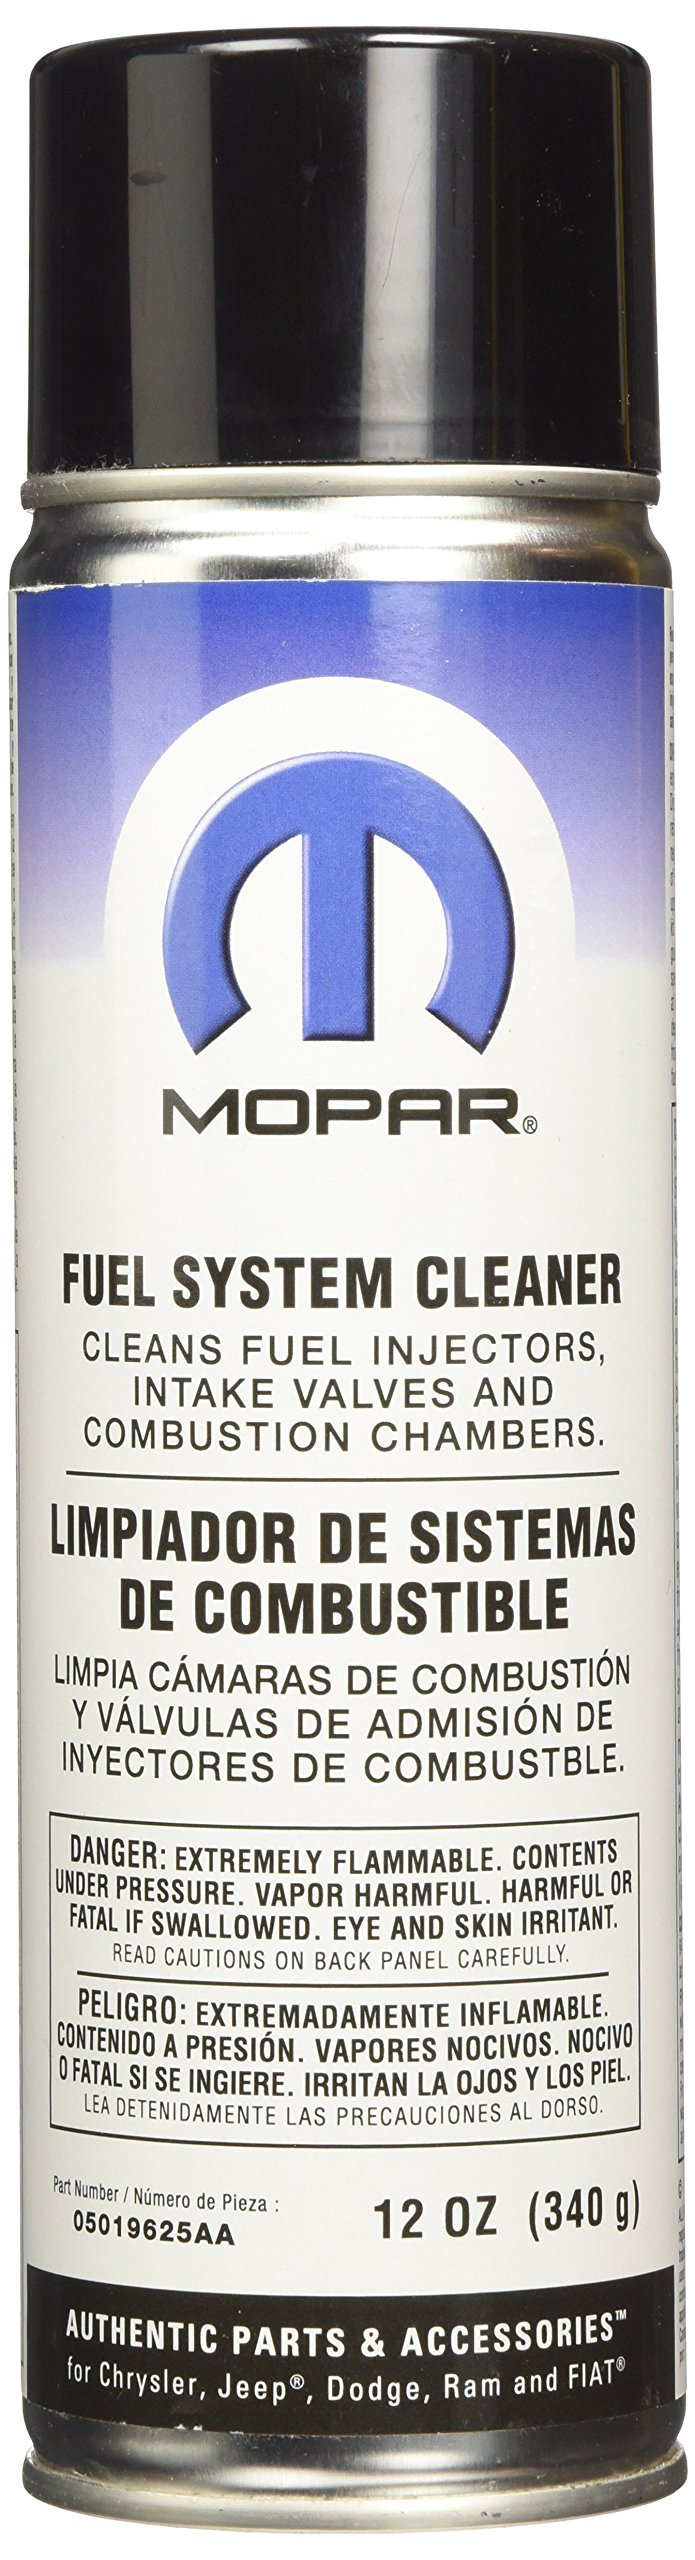 Genuine Chrysler Accessories 5019625AA Fuel System Cleaner - 12 oz. Aerosol Can by Chrysler